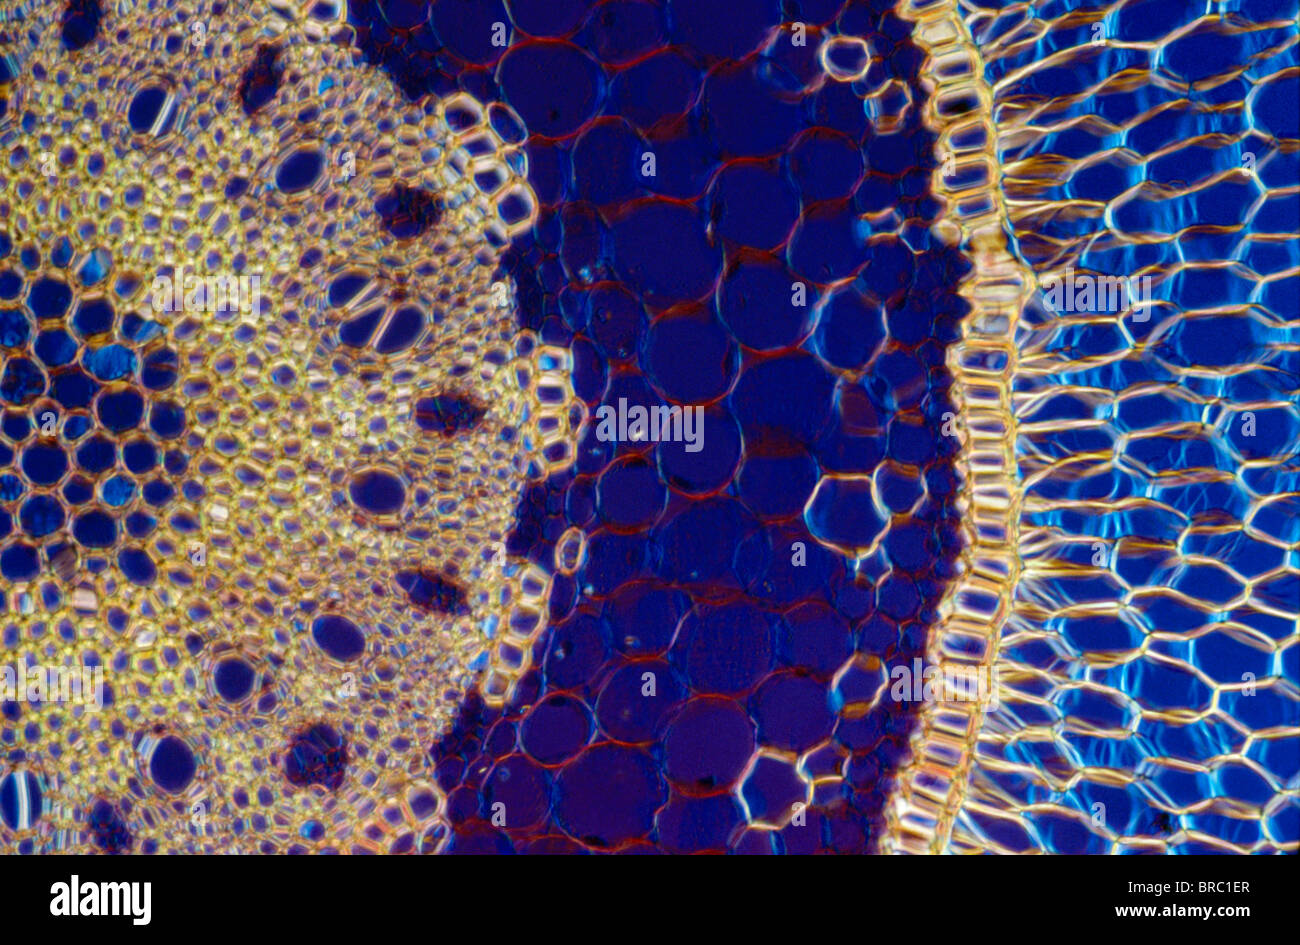 Light Micrograph (LM) of a transverse section of an aerial root of Orchid (Dendrobium sp.), magnification x600 - Stock Image